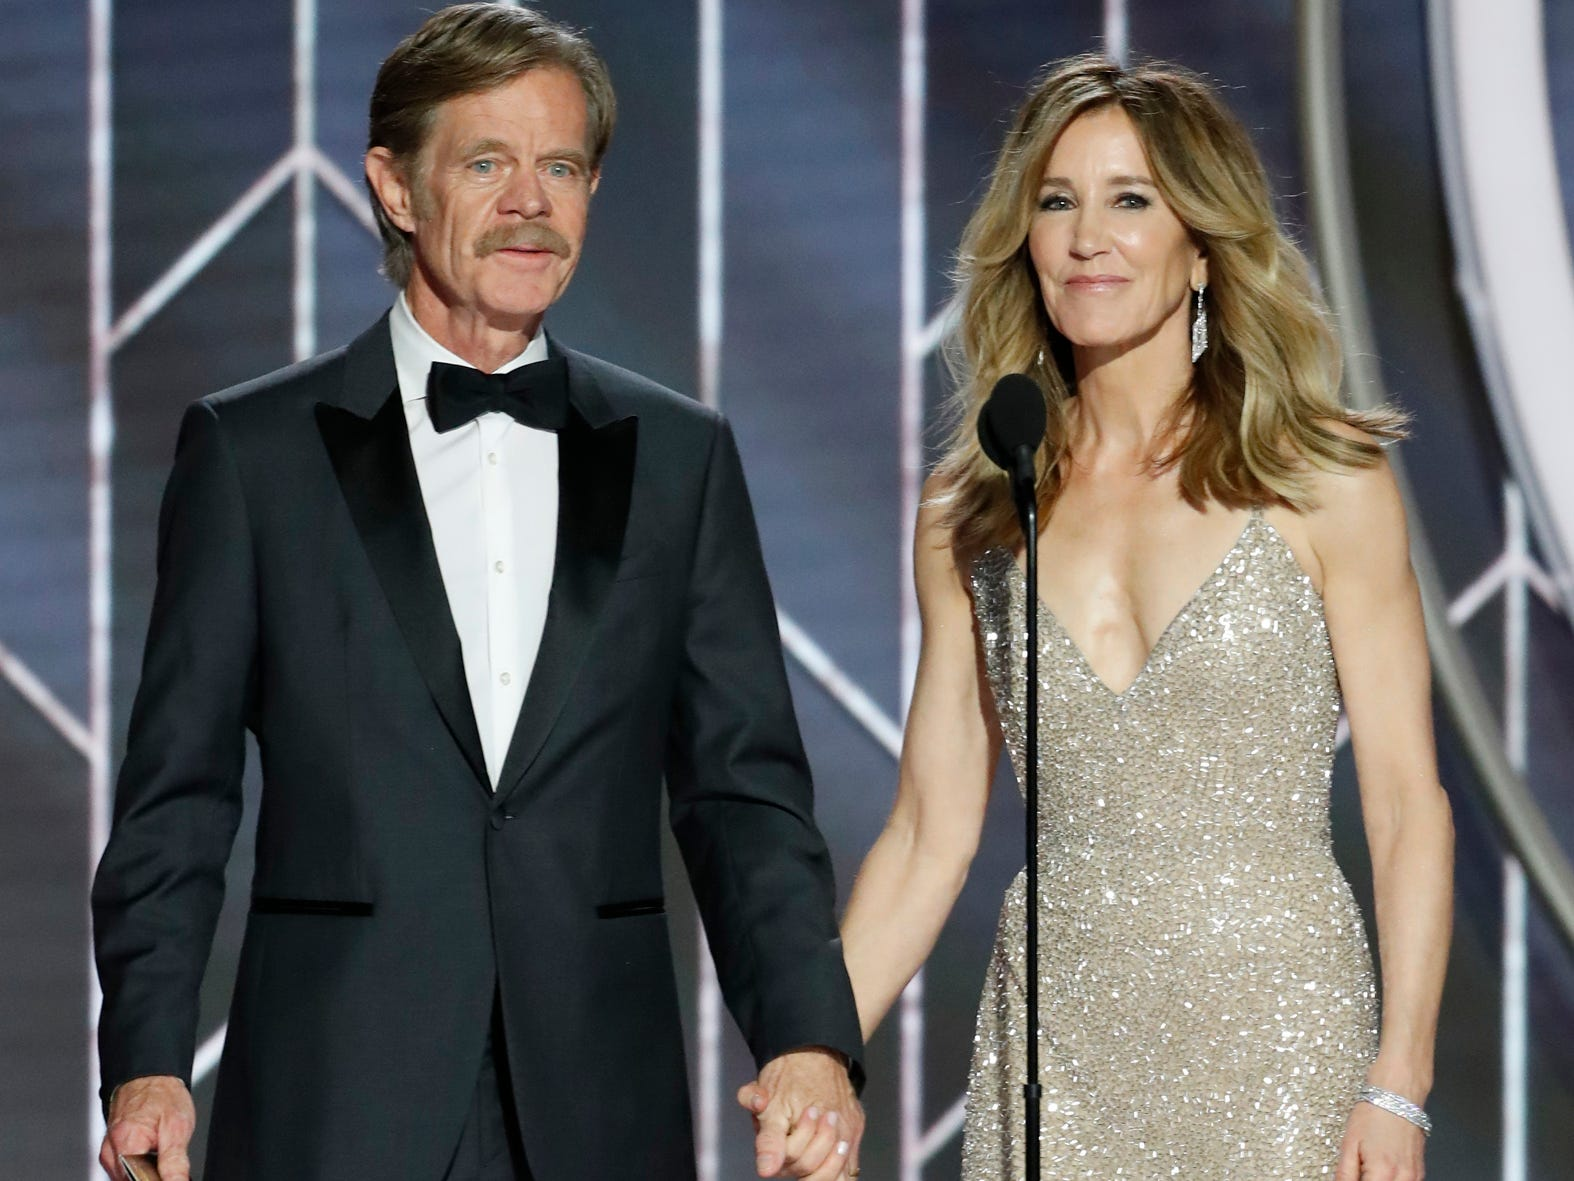 William H. Macy and Felicity Huffman present during the 76th Golden Globe Awards.